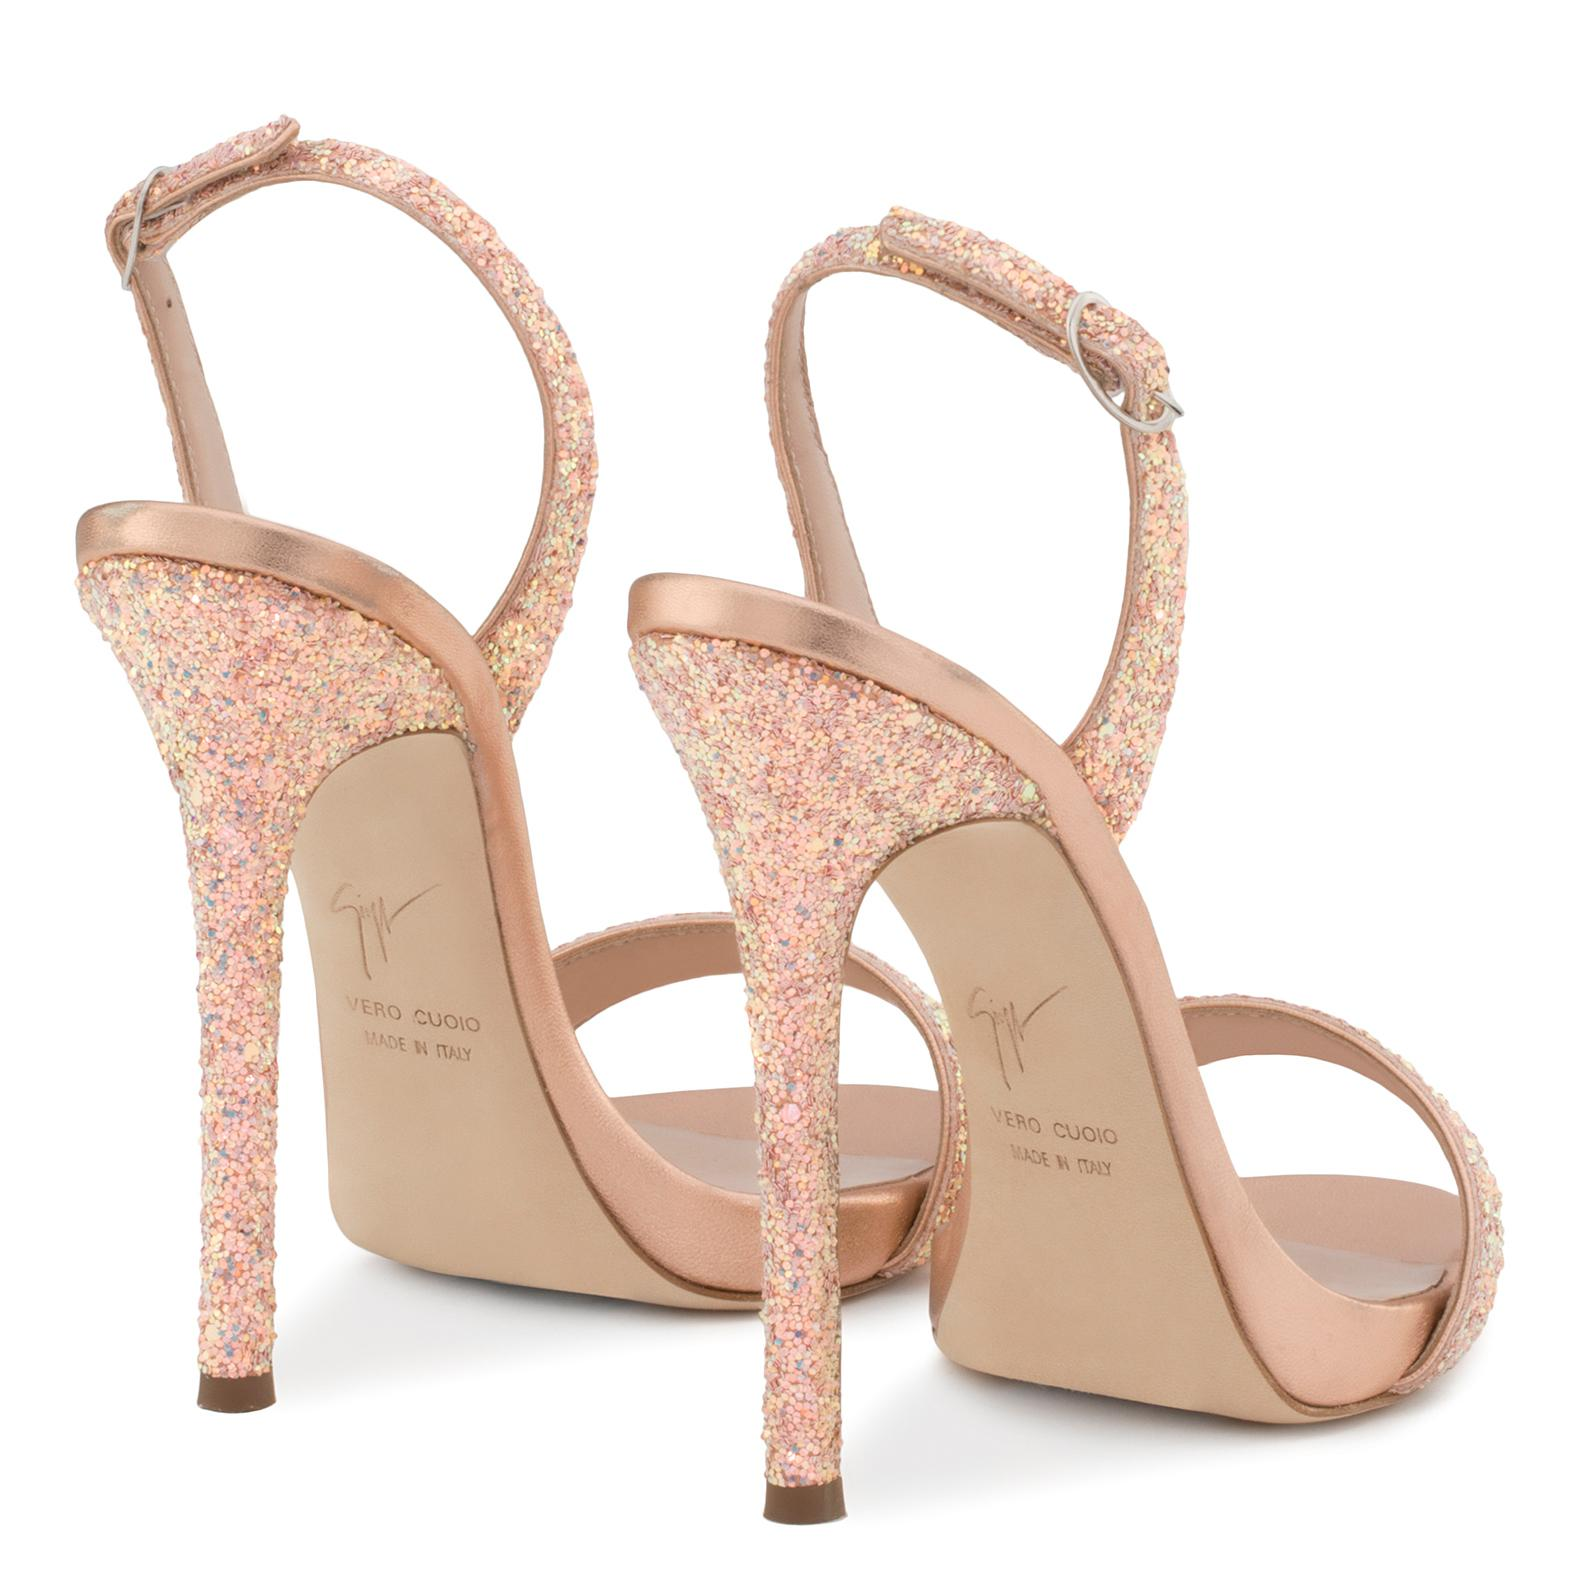 sale 2015 new online for sale Giuseppe Zanotti Design Sophie glitter sandals amazon sale online buy cheap latest collections popular for sale 2VfpQnh1l